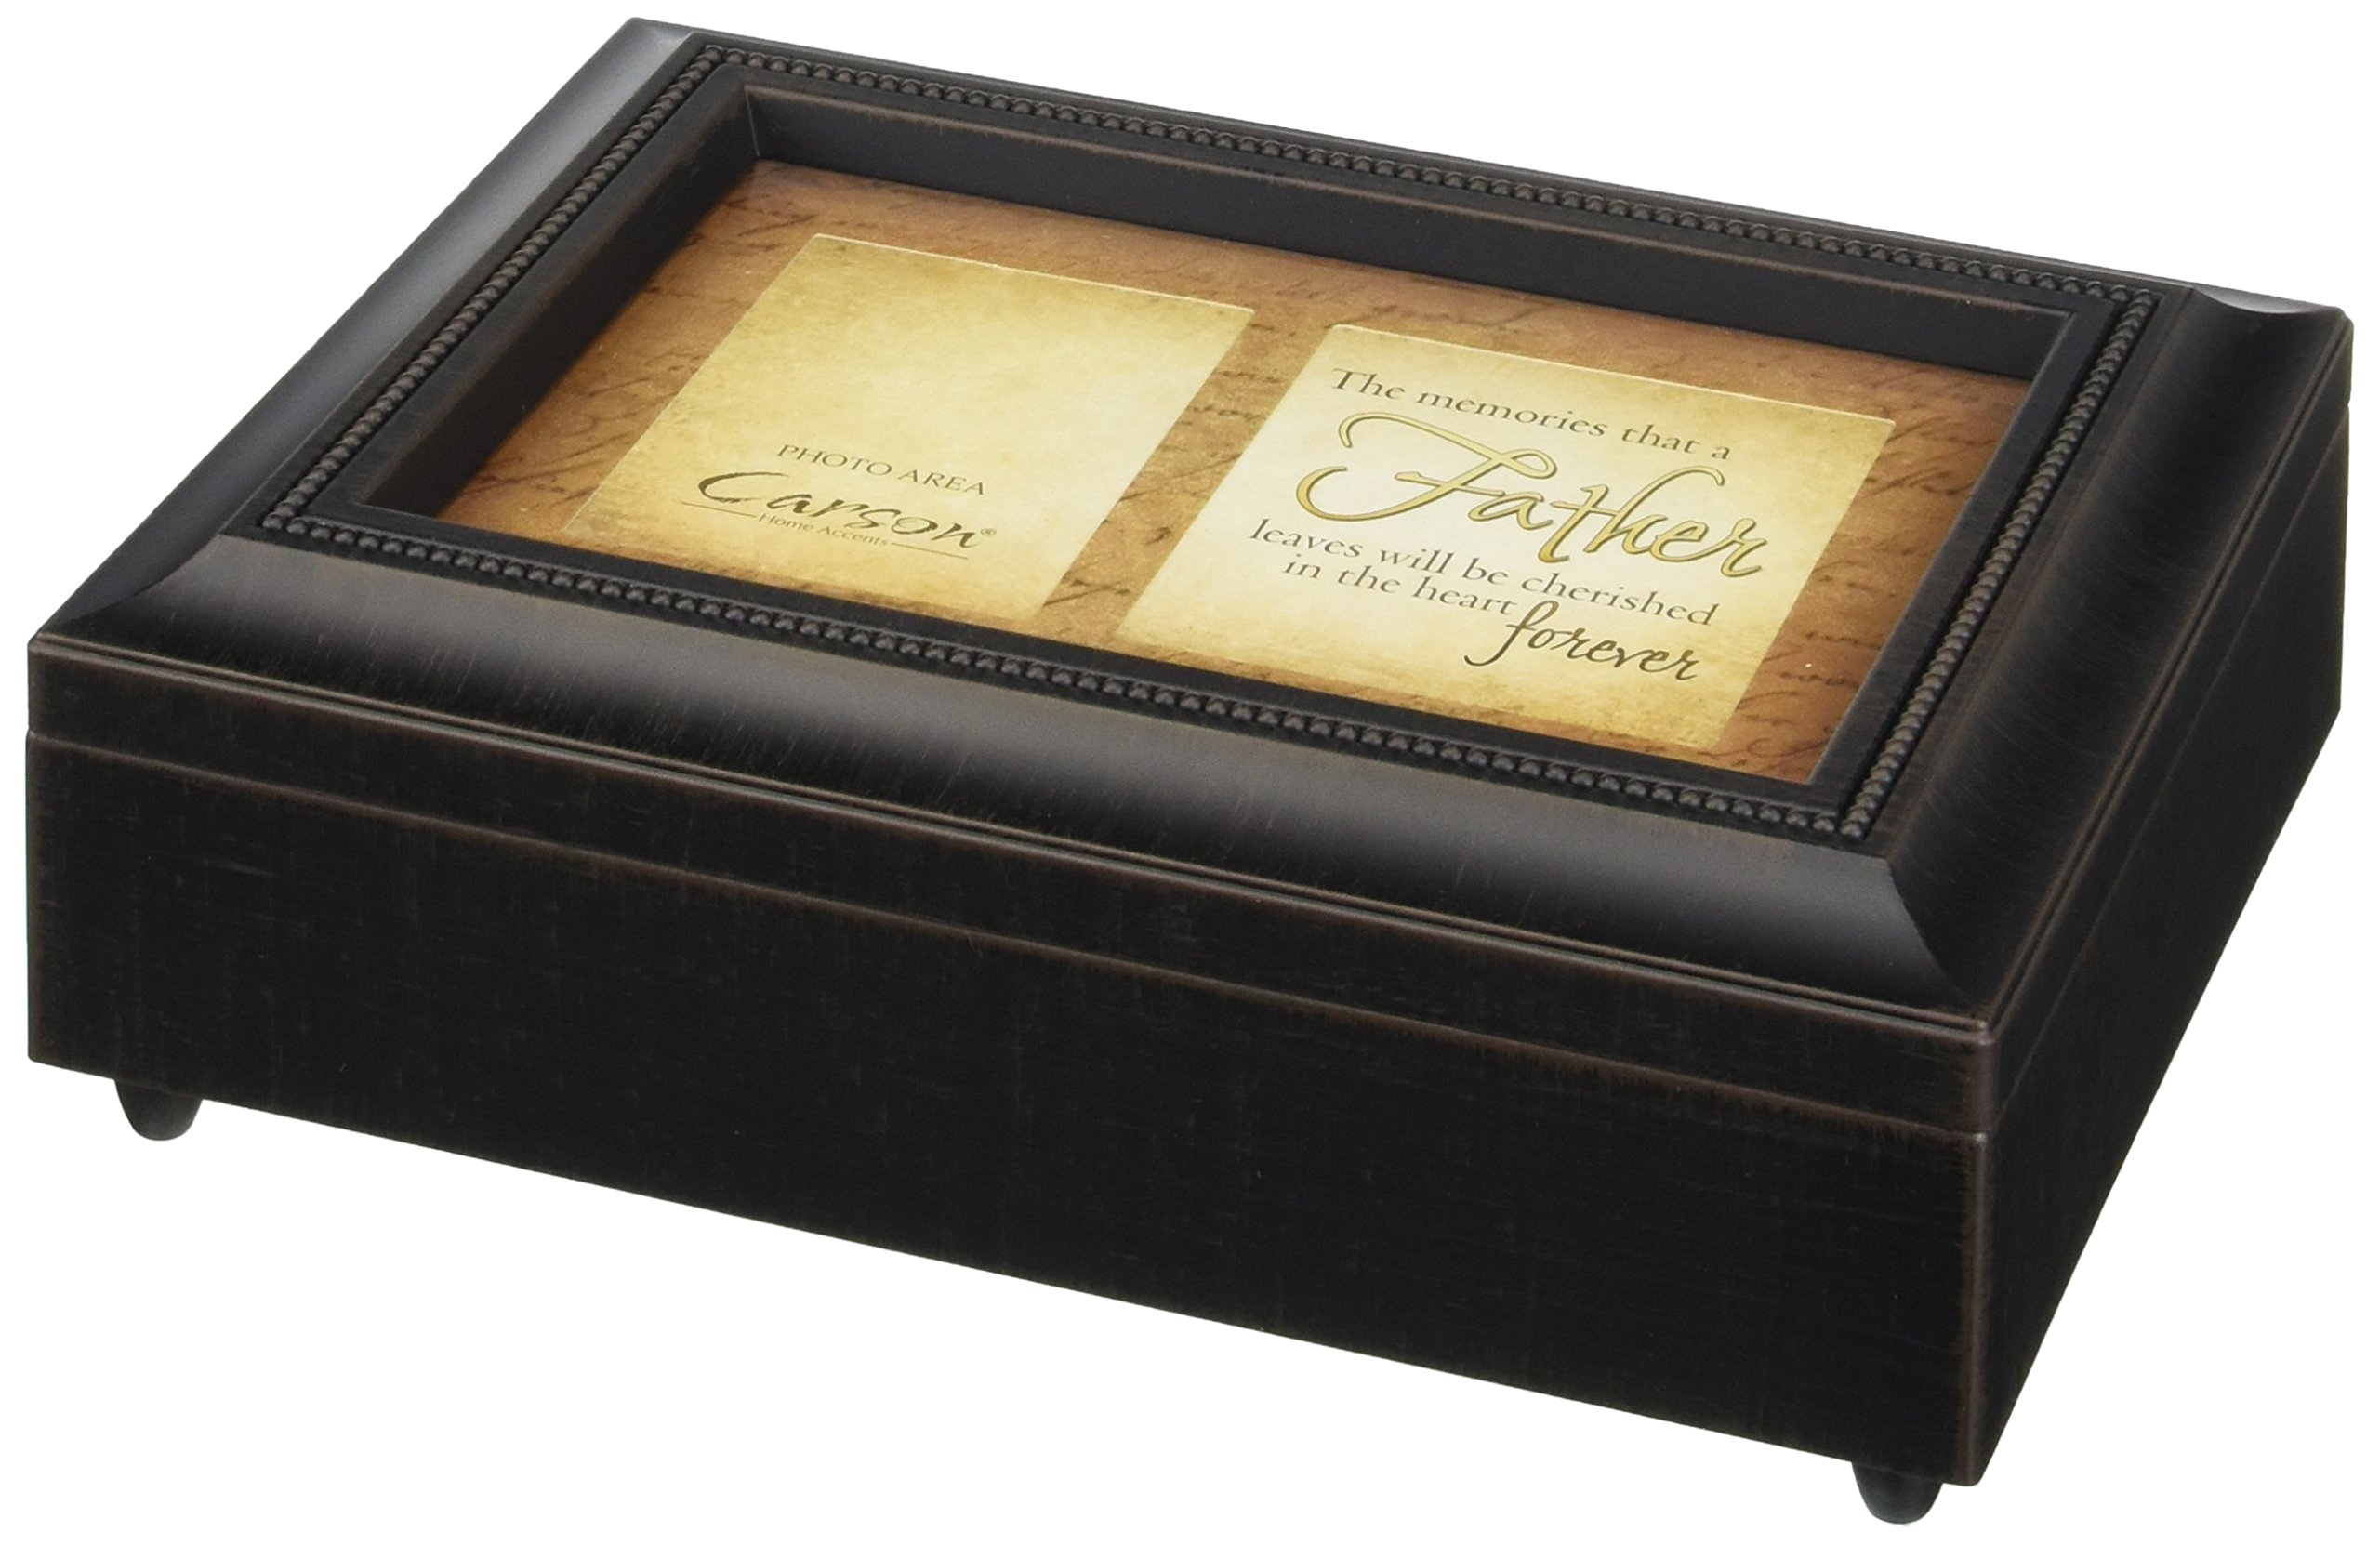 Carson Home Accents 17946 Father Memories Bereavement Music Box, 8-Inch by 6-Inch by 2-3/4-Inch by Carson